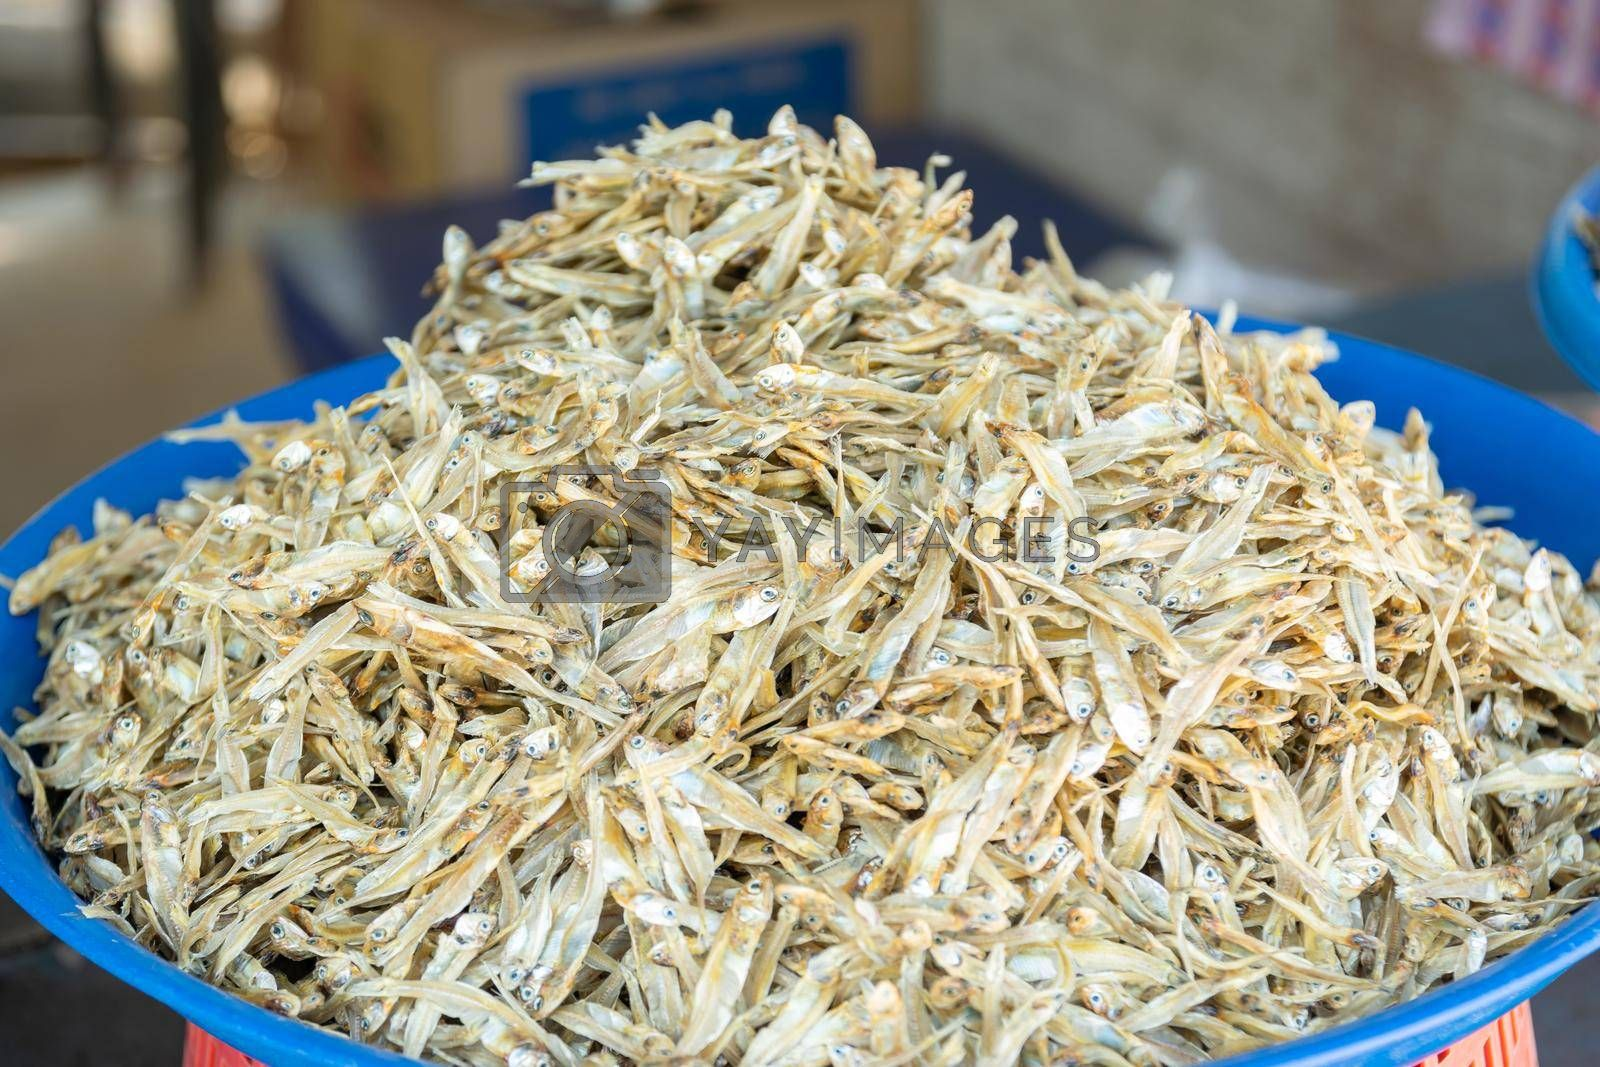 Group of small sea fish dried for sale to tourists in the market.